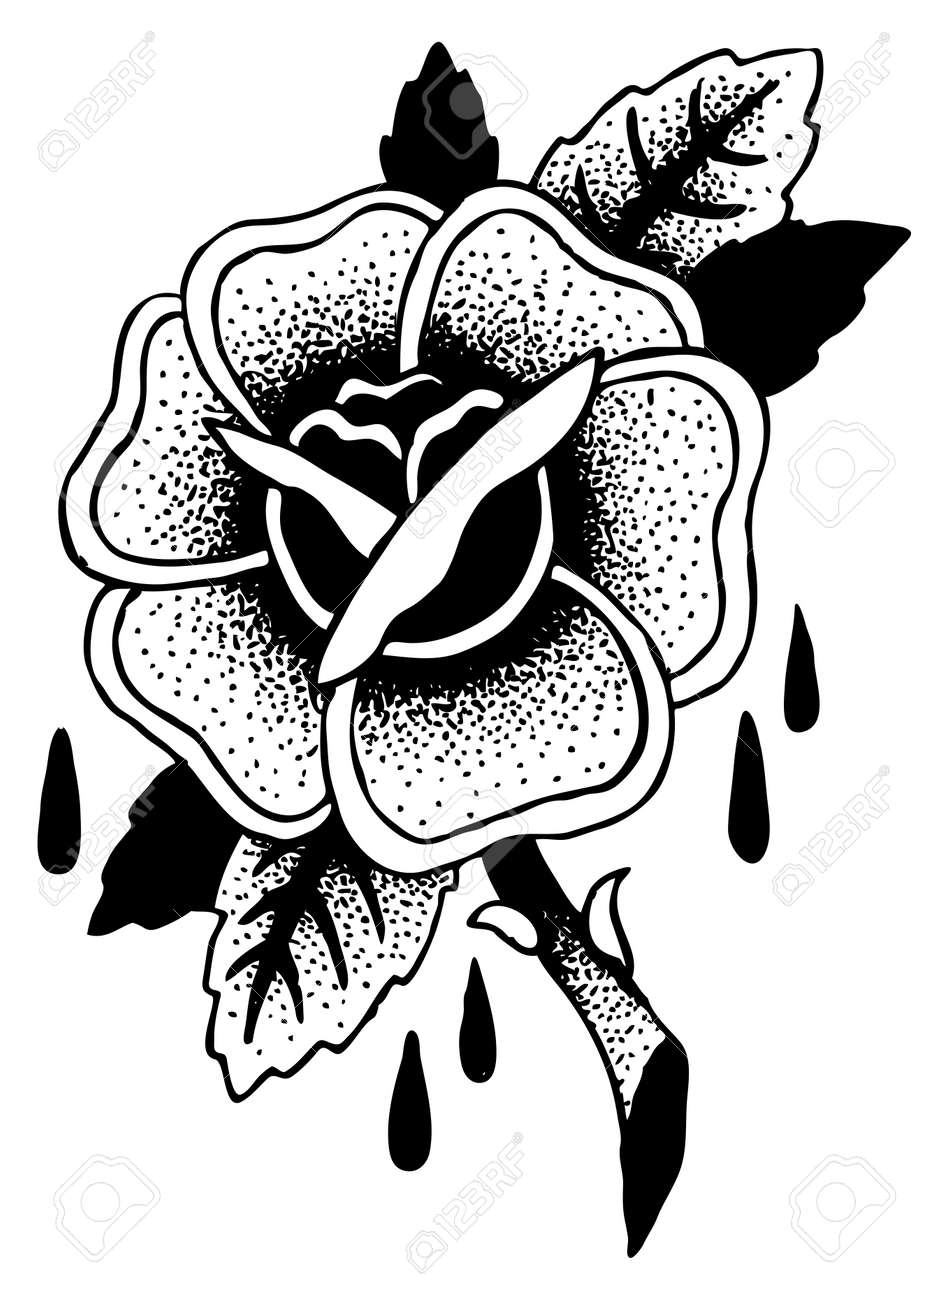 Roses Tattoo Sketch Doodle Illustration Royalty Free Cliparts